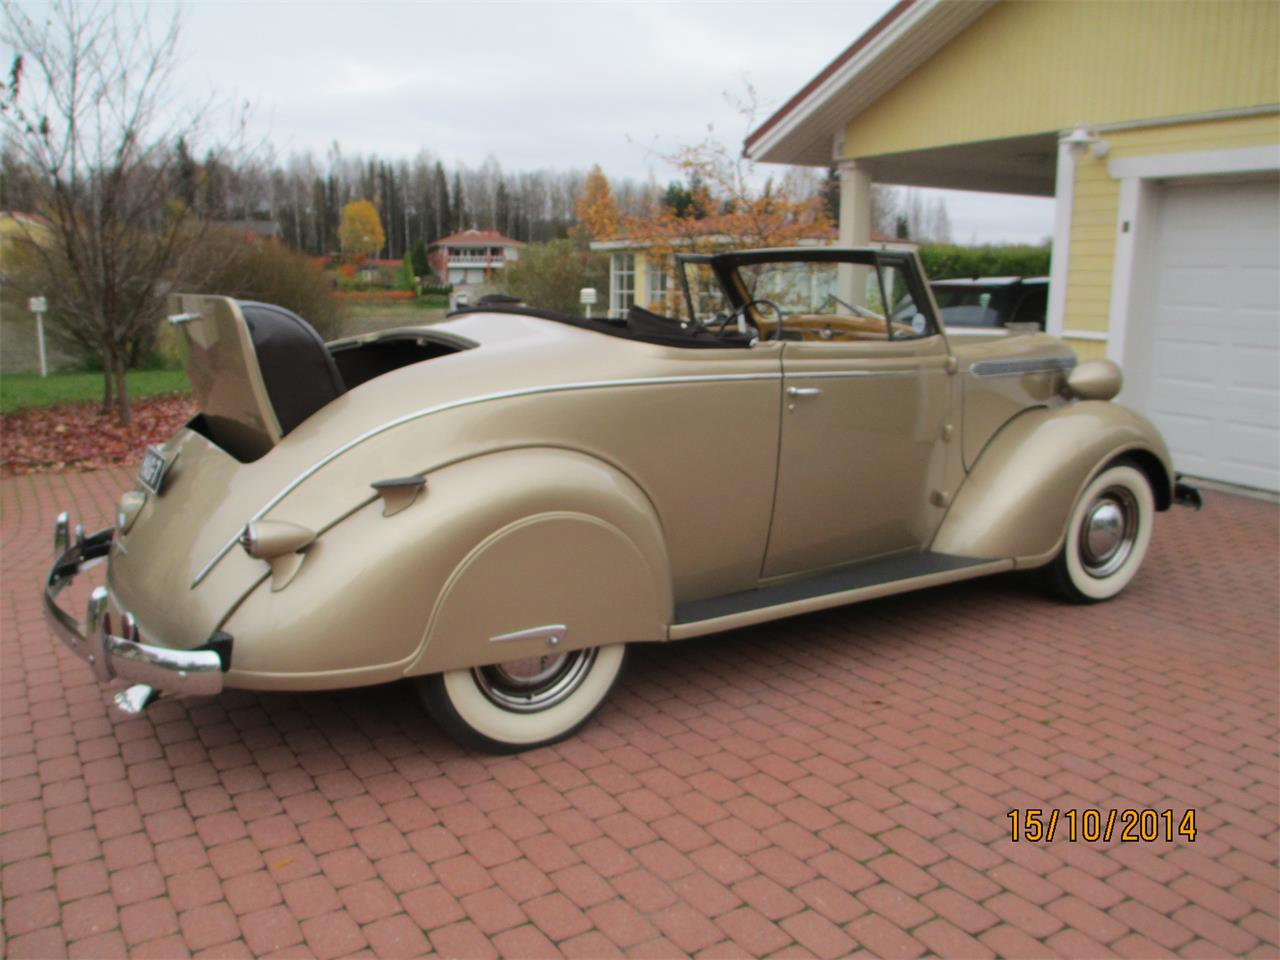 1937 Chrysler Royal for sale in Helsinki, Vantaa